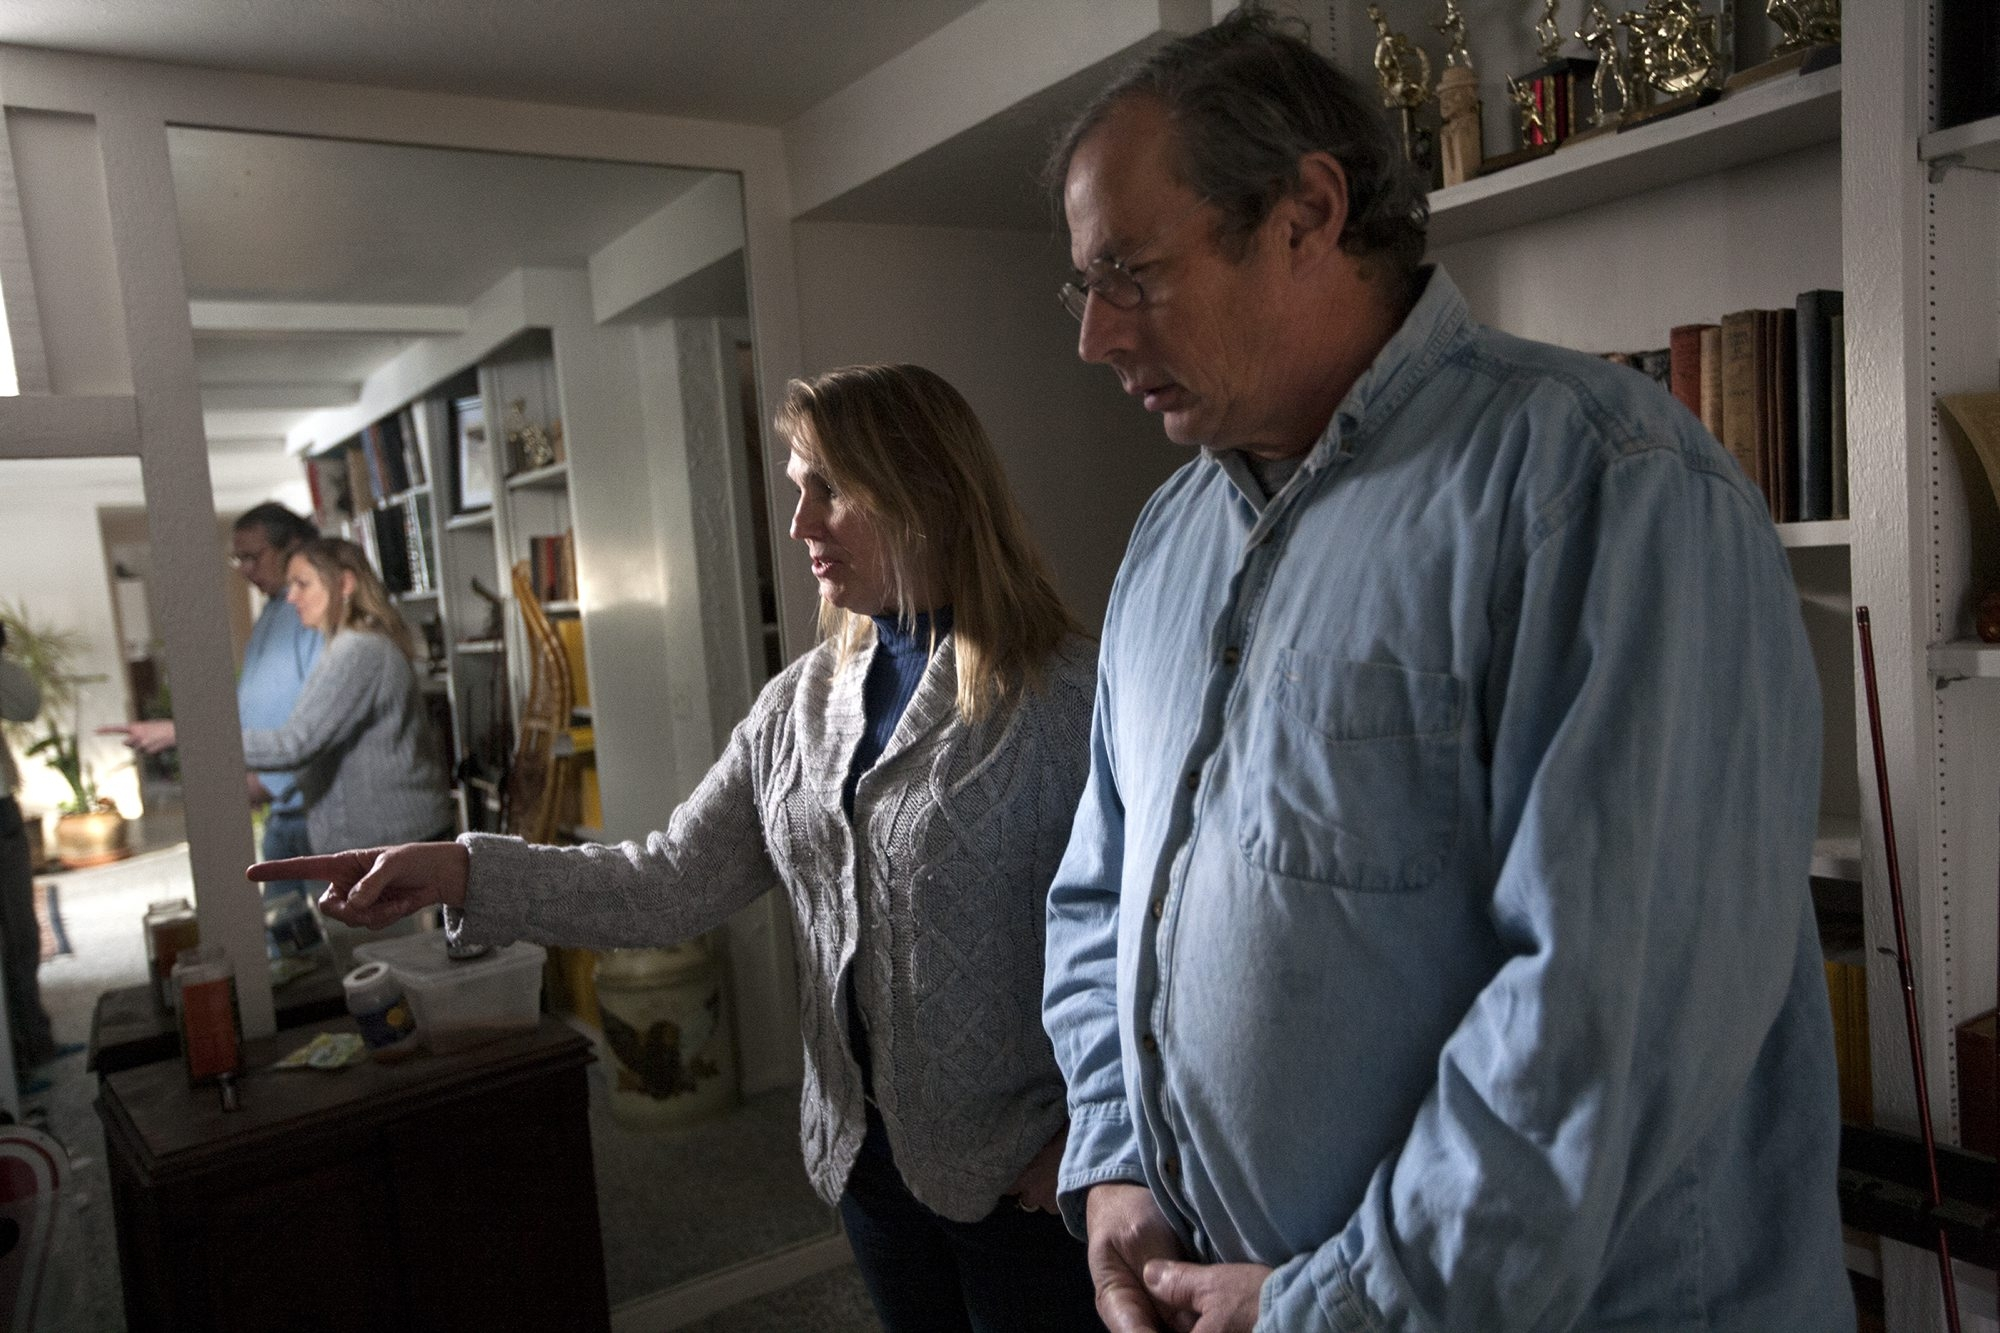 Bob and Liz McLean, who lost their jobs during the recession, discuss the renovations they are working on, preparing for the day they need to sell their house in Prior Lake, Minn. Their house is not currently on the market, and they don't plan to sell anytime soon.